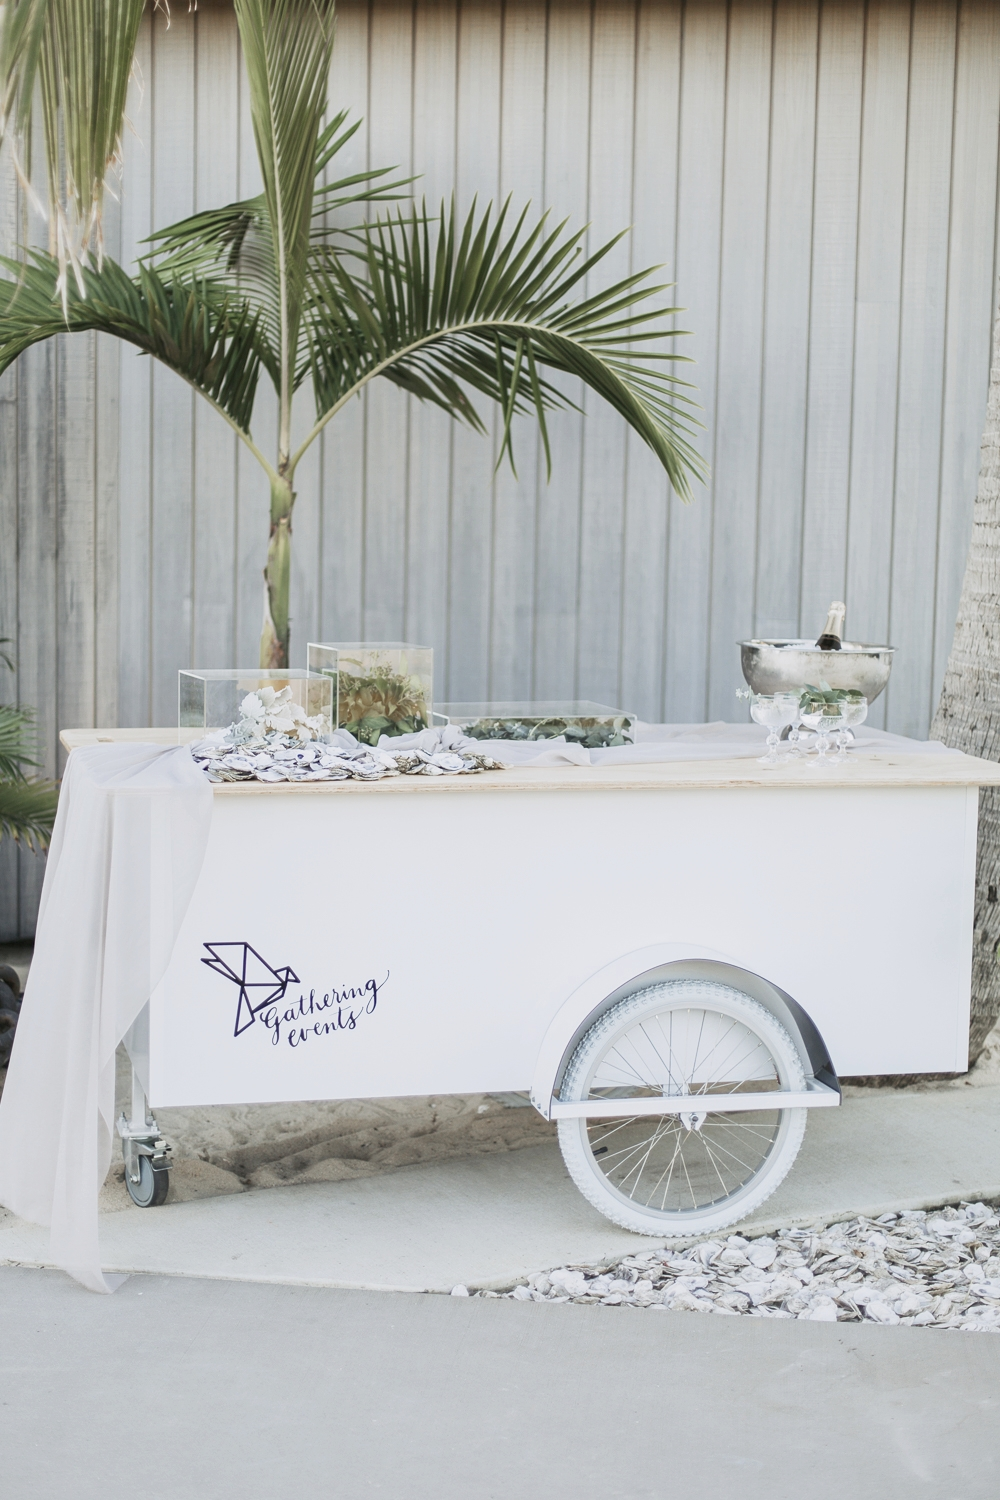 Gathering-Events-Bar-Cart-Brisbane-Sunshine Coast-Gold Coast-Bar-Hire